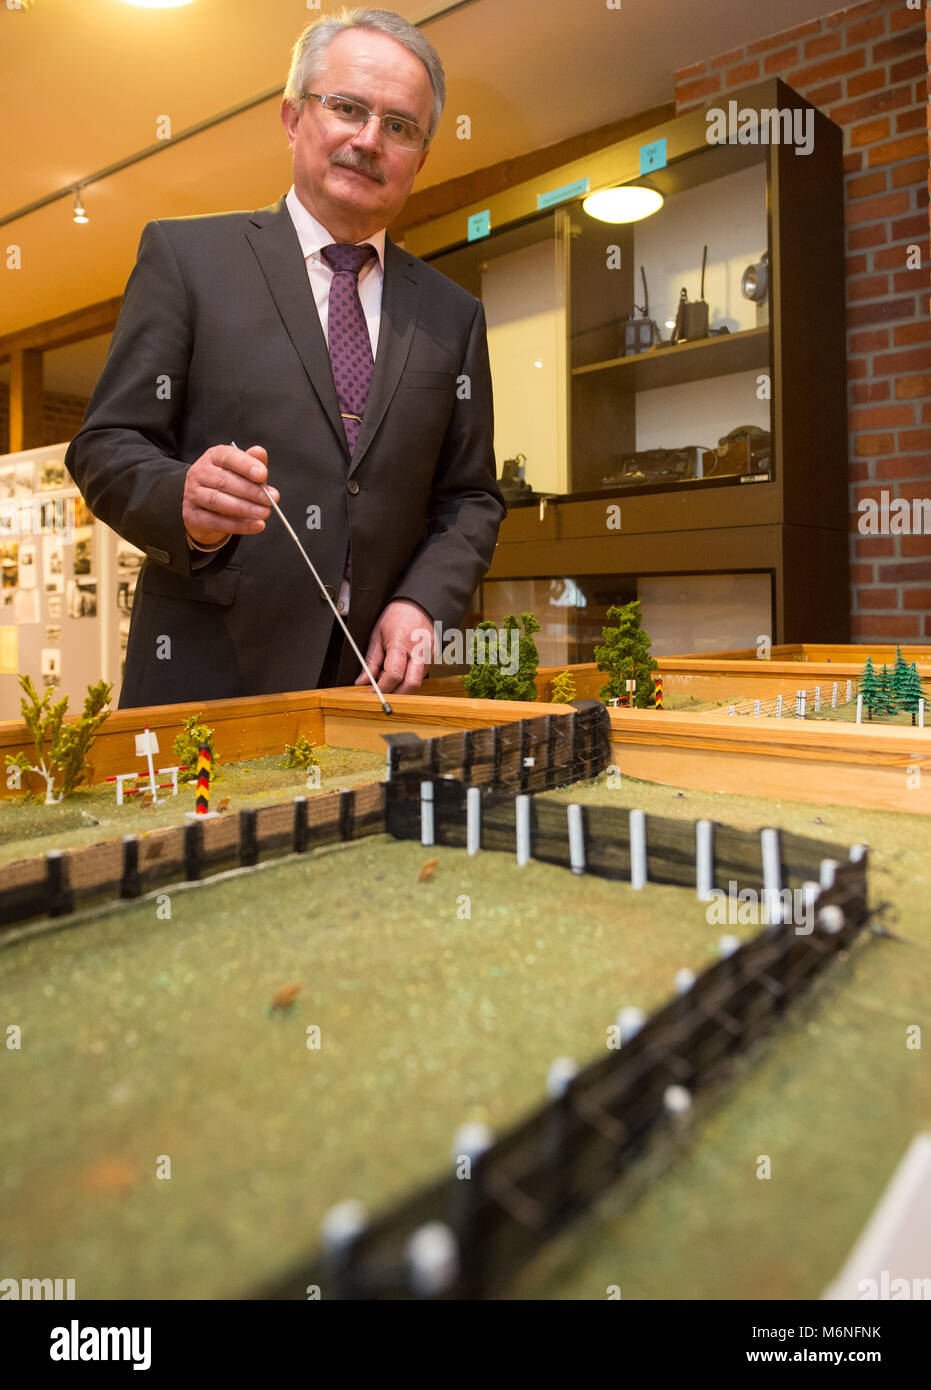 24 February 2018, Germany, Bad Bodenteich: Museum director Karl-Theodor Meyer show a former border installation - Stock Image